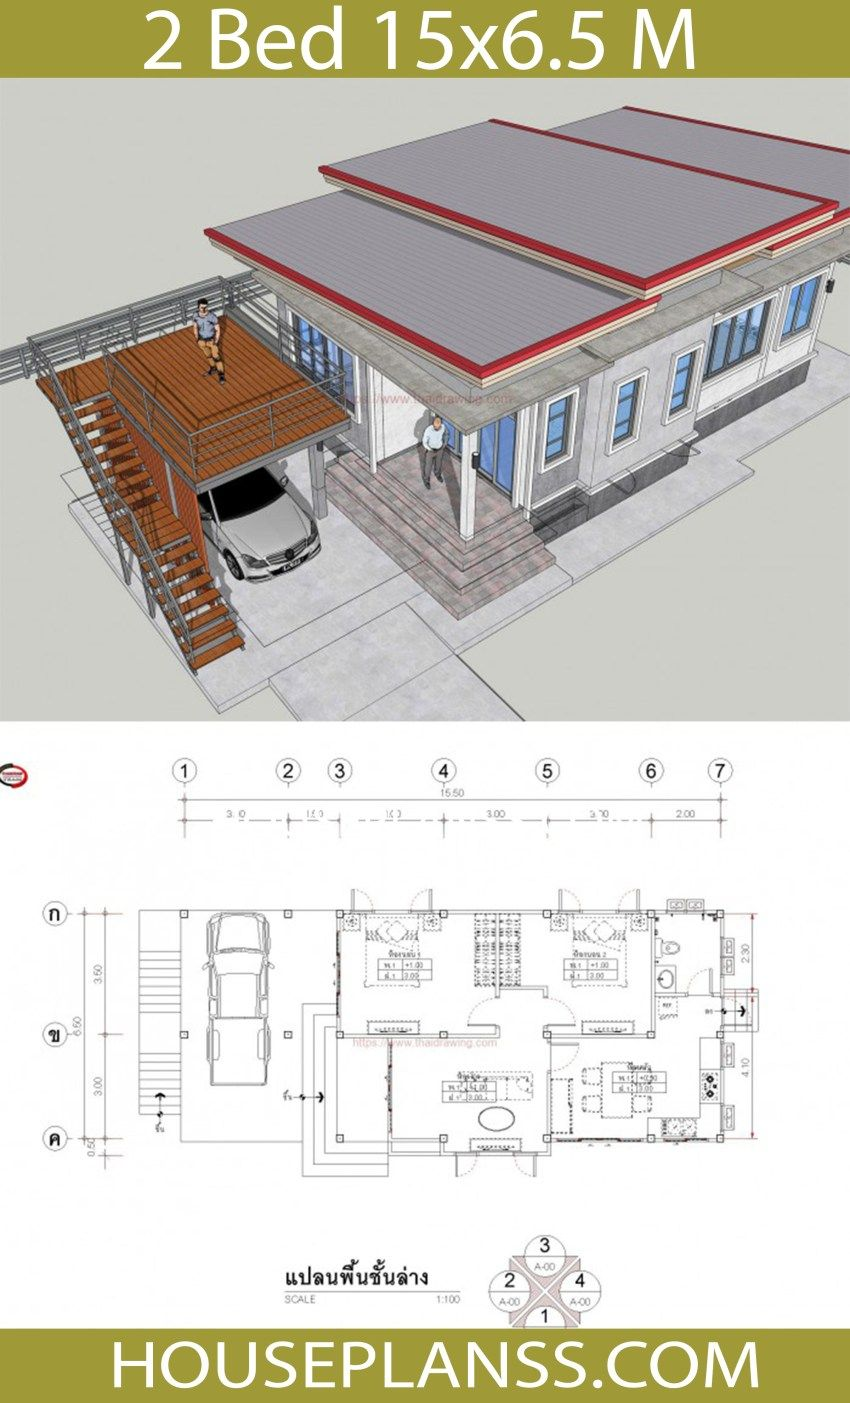 House Design Idea 13x15 5 With 4 Bedrooms House Plans S House Plans Model House Plan House Architecture Design